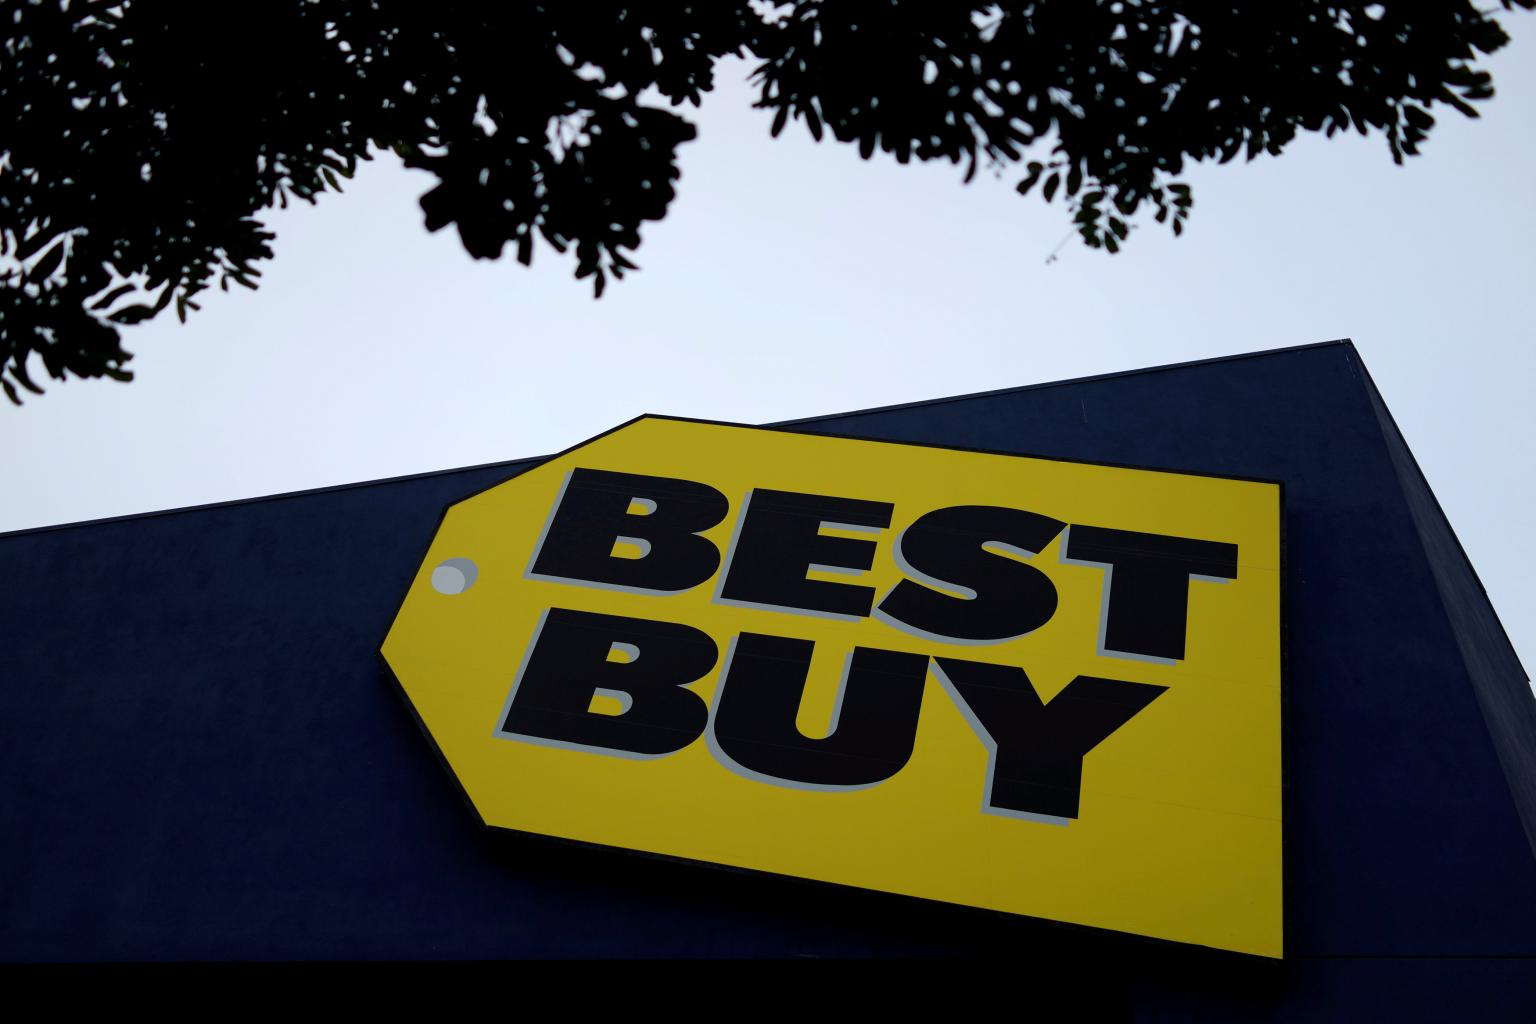 Best Buy ends relationship with China's Huawei